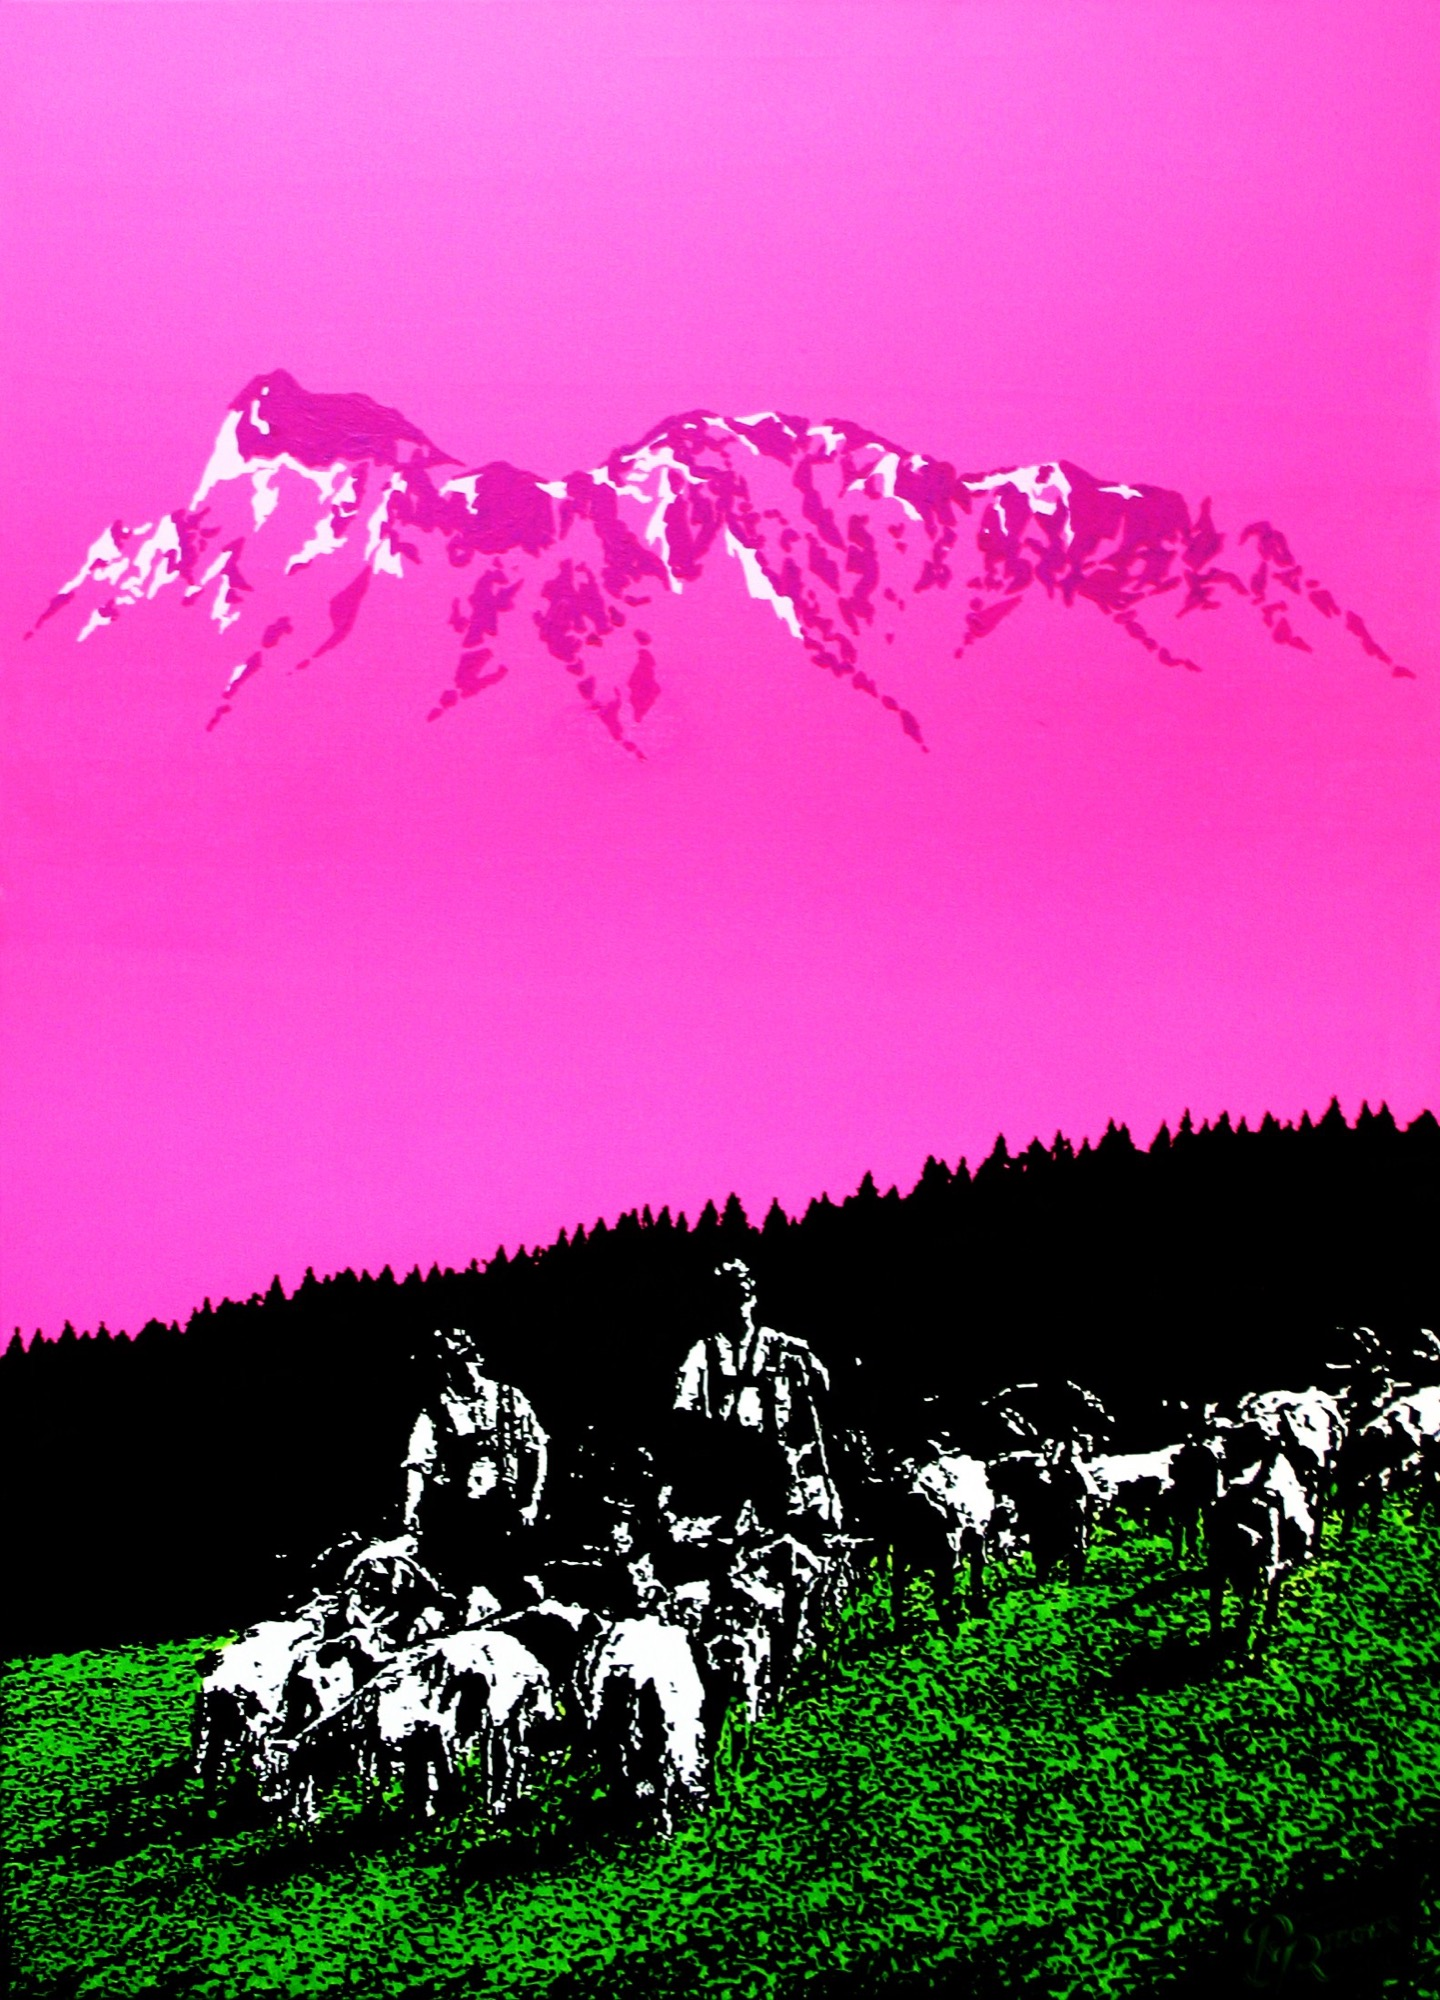 Alpine pop art by Bernhard Rieger